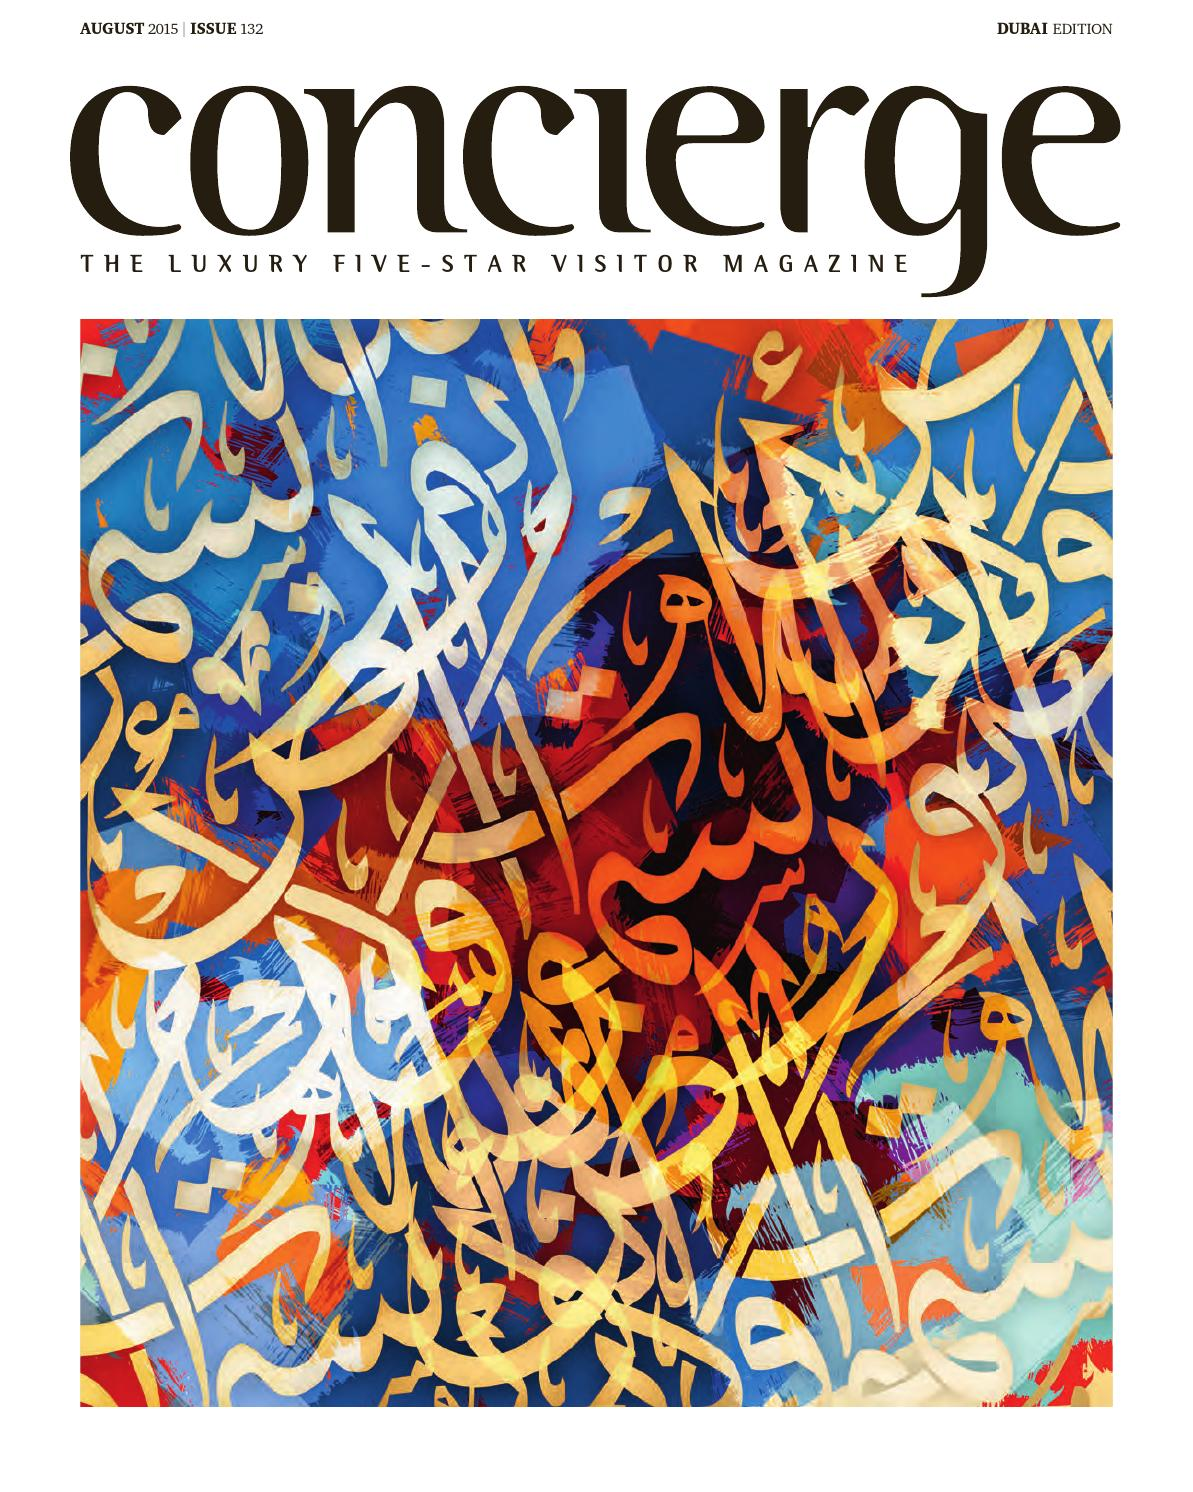 Concierge Dubai August 2015 by npimedia fz llc - issuu cfa107c6bc803